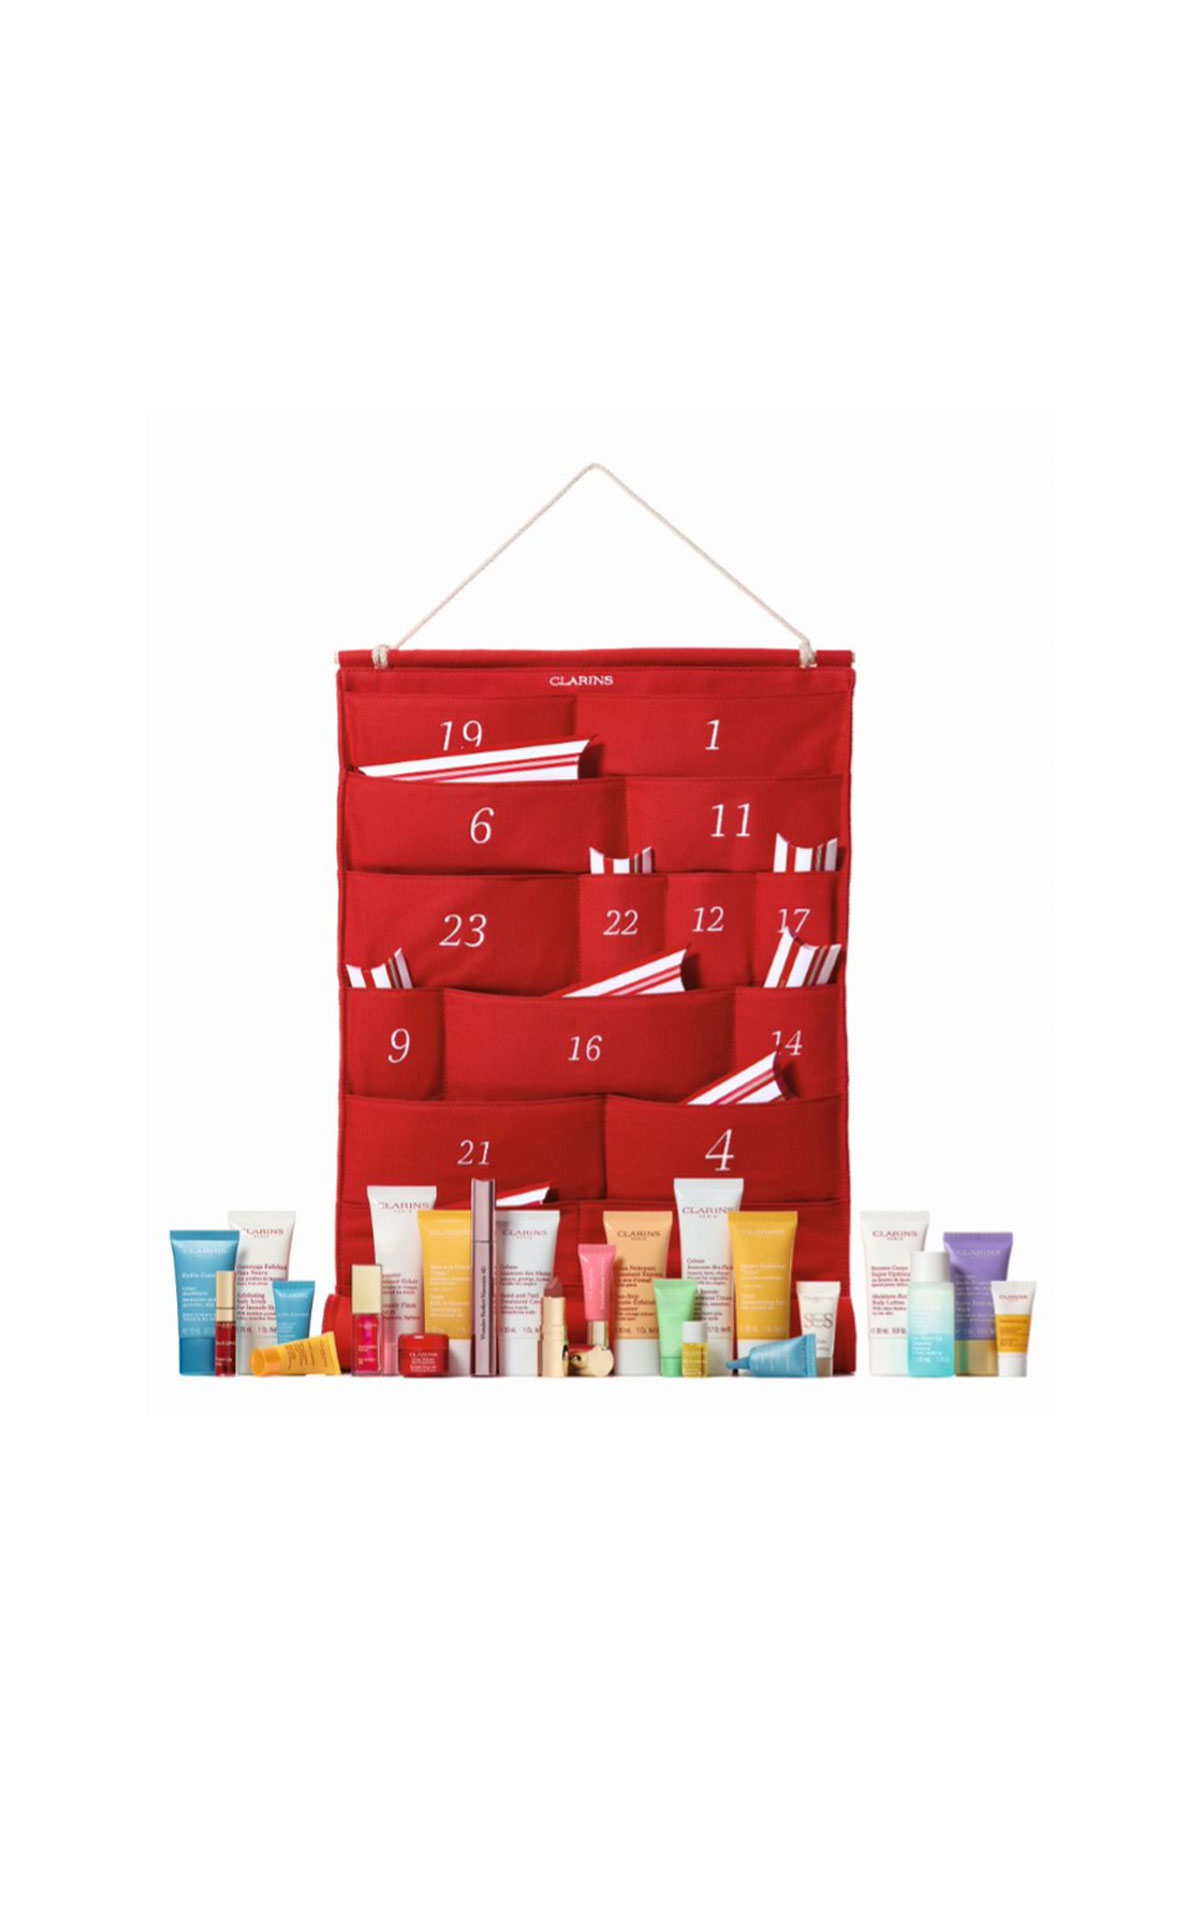 Clarins Advent calendar from Bicester Village